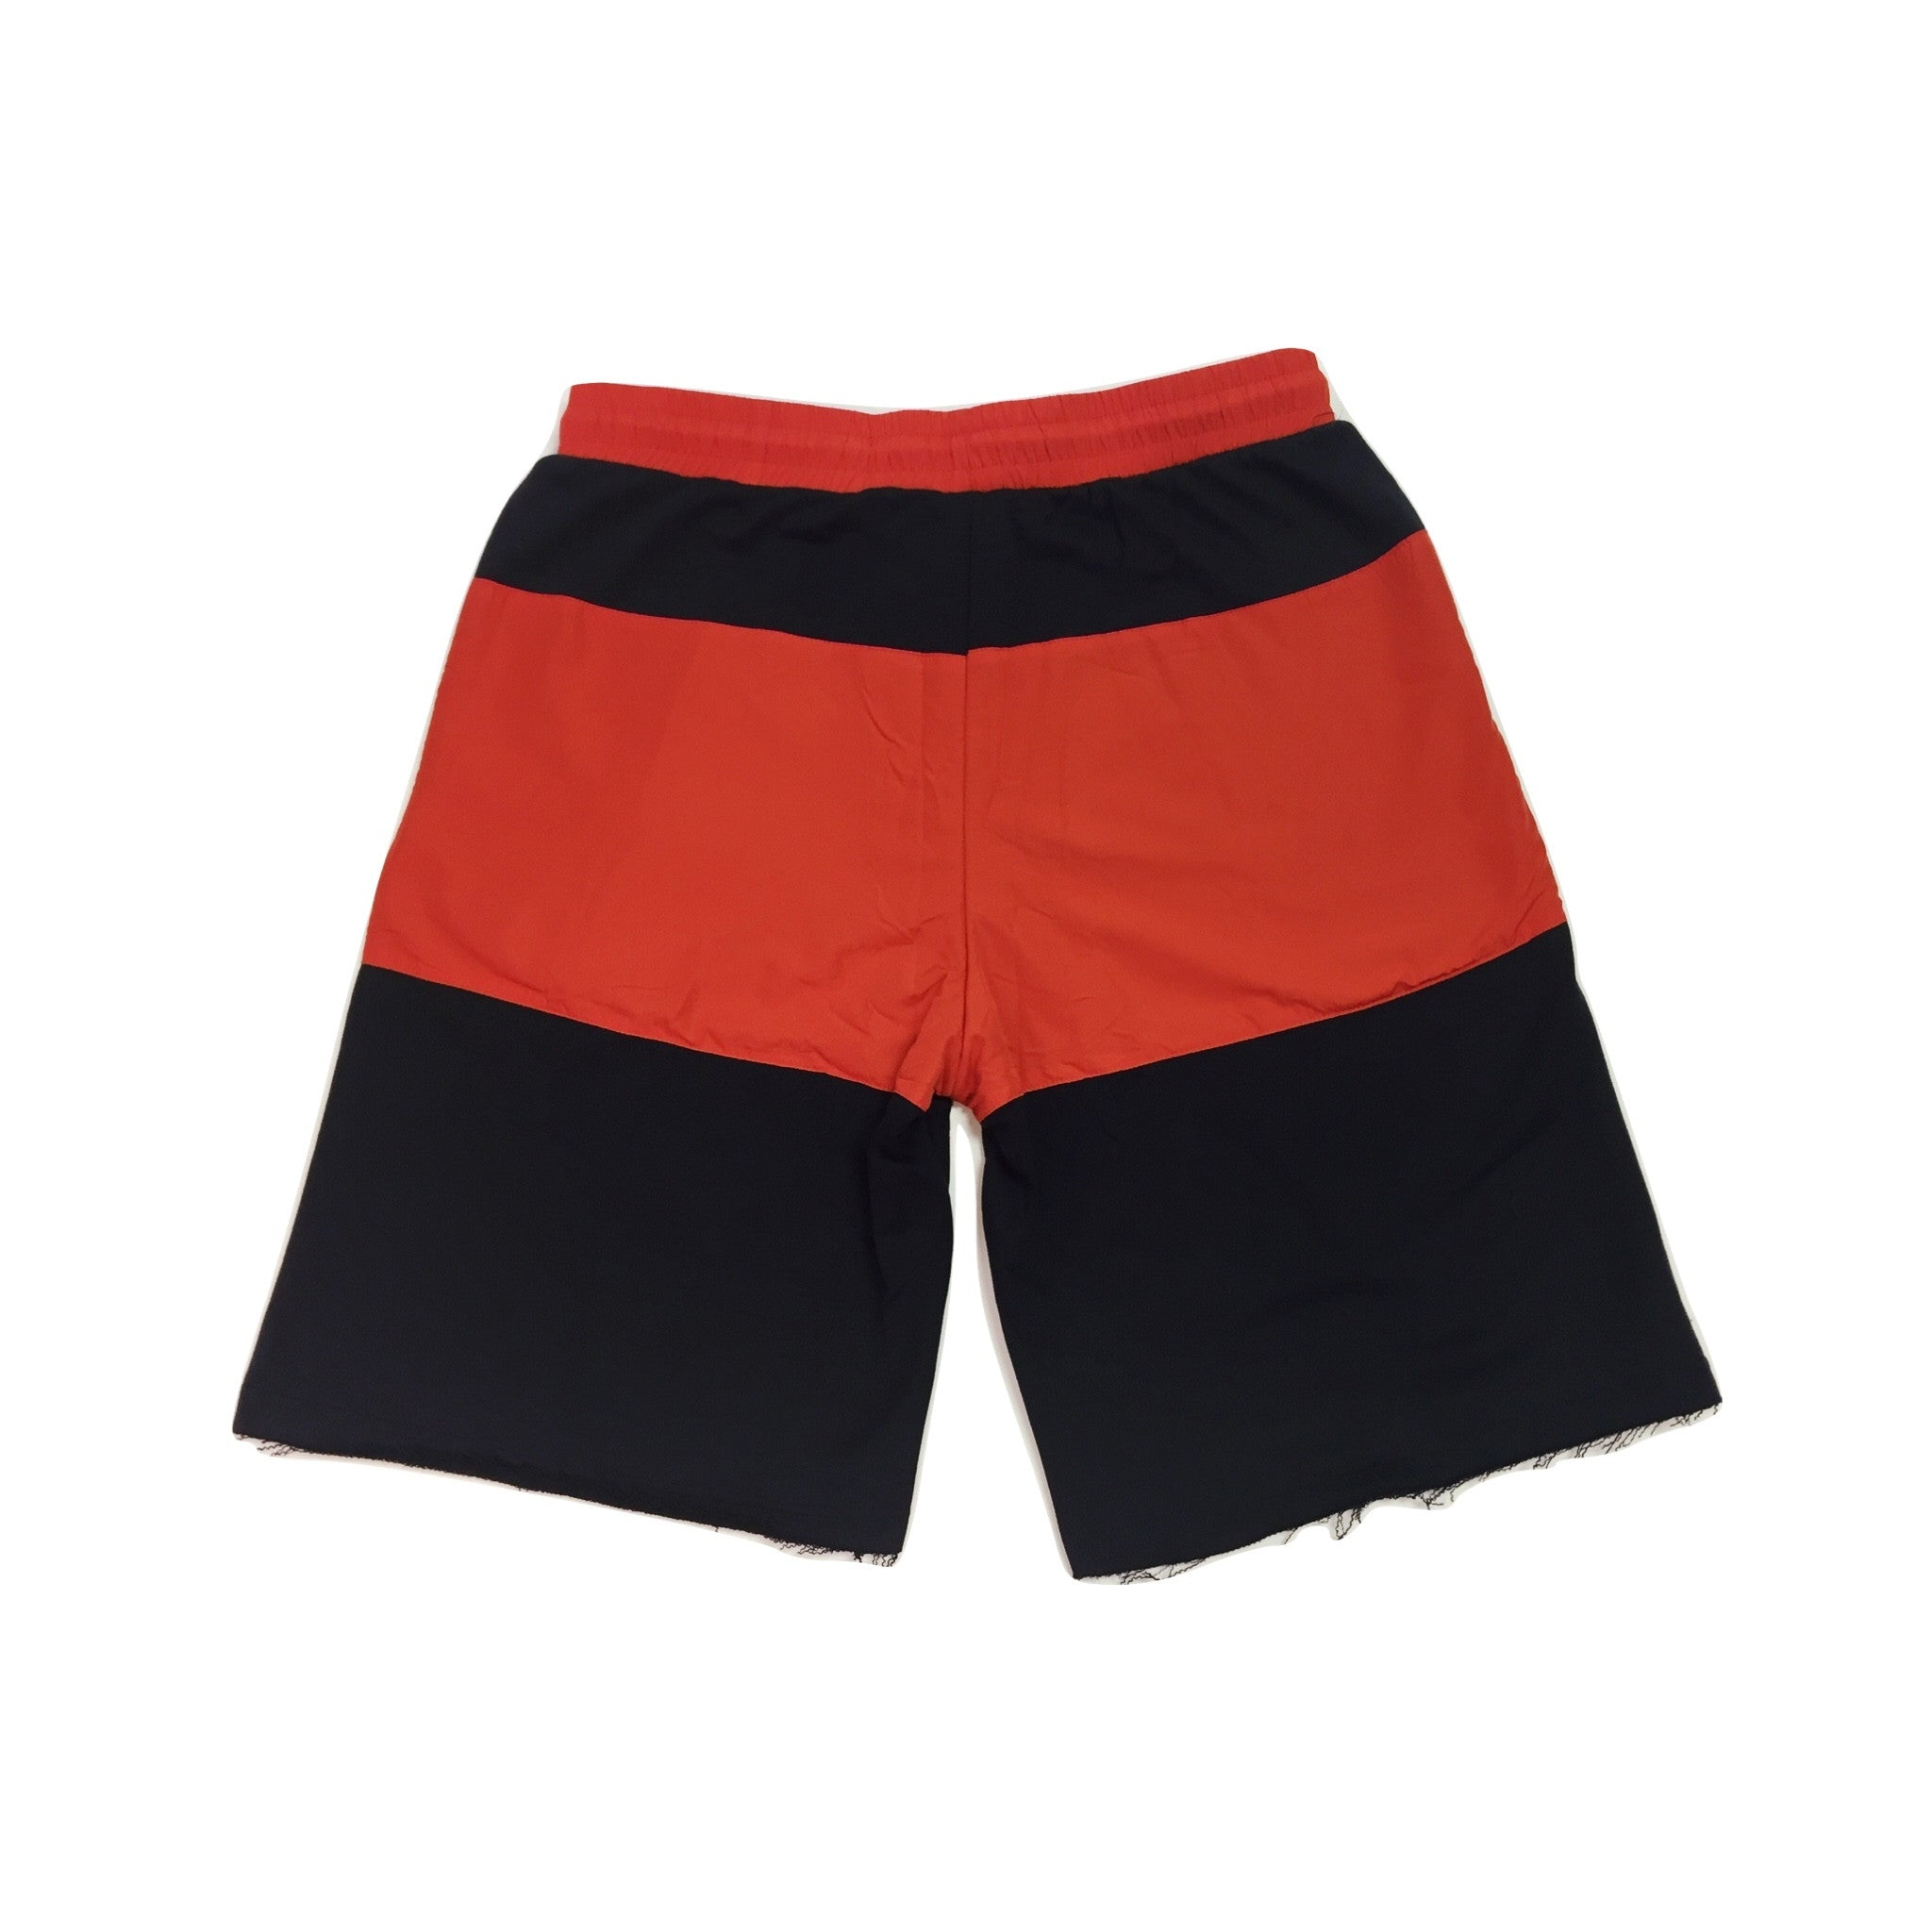 TORCHED BREAKER SHORTS - NAVY - KONTROLLED SUBSTANCE